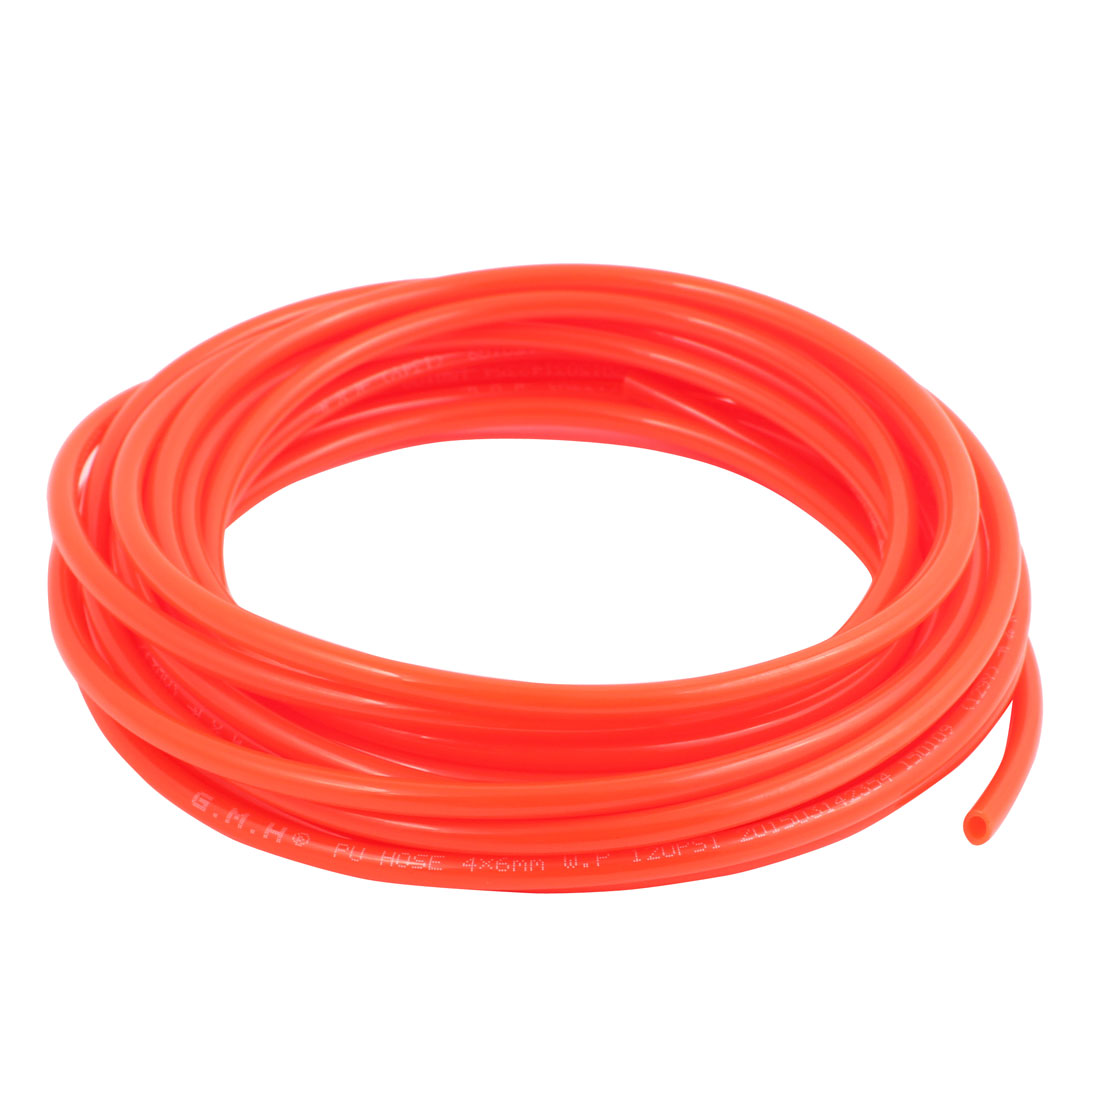 6mm x 4mm Pneumatic Air Compressor Tubing PU Hose Tube Pipe 7.7 meter Orange